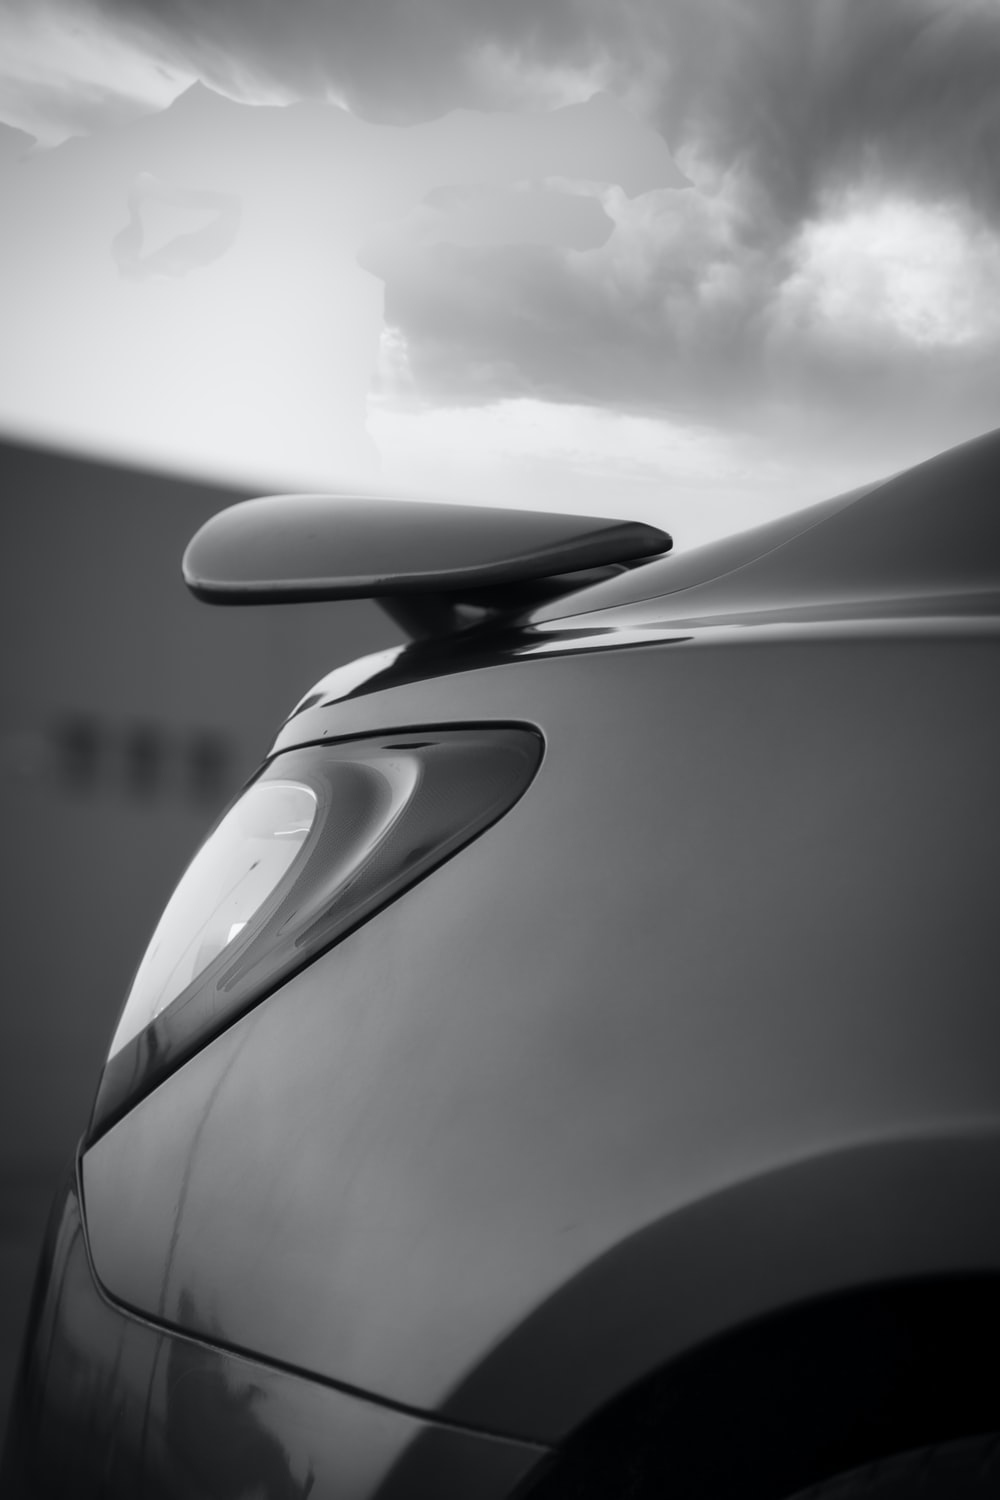 grayscale photo of cars side mirror